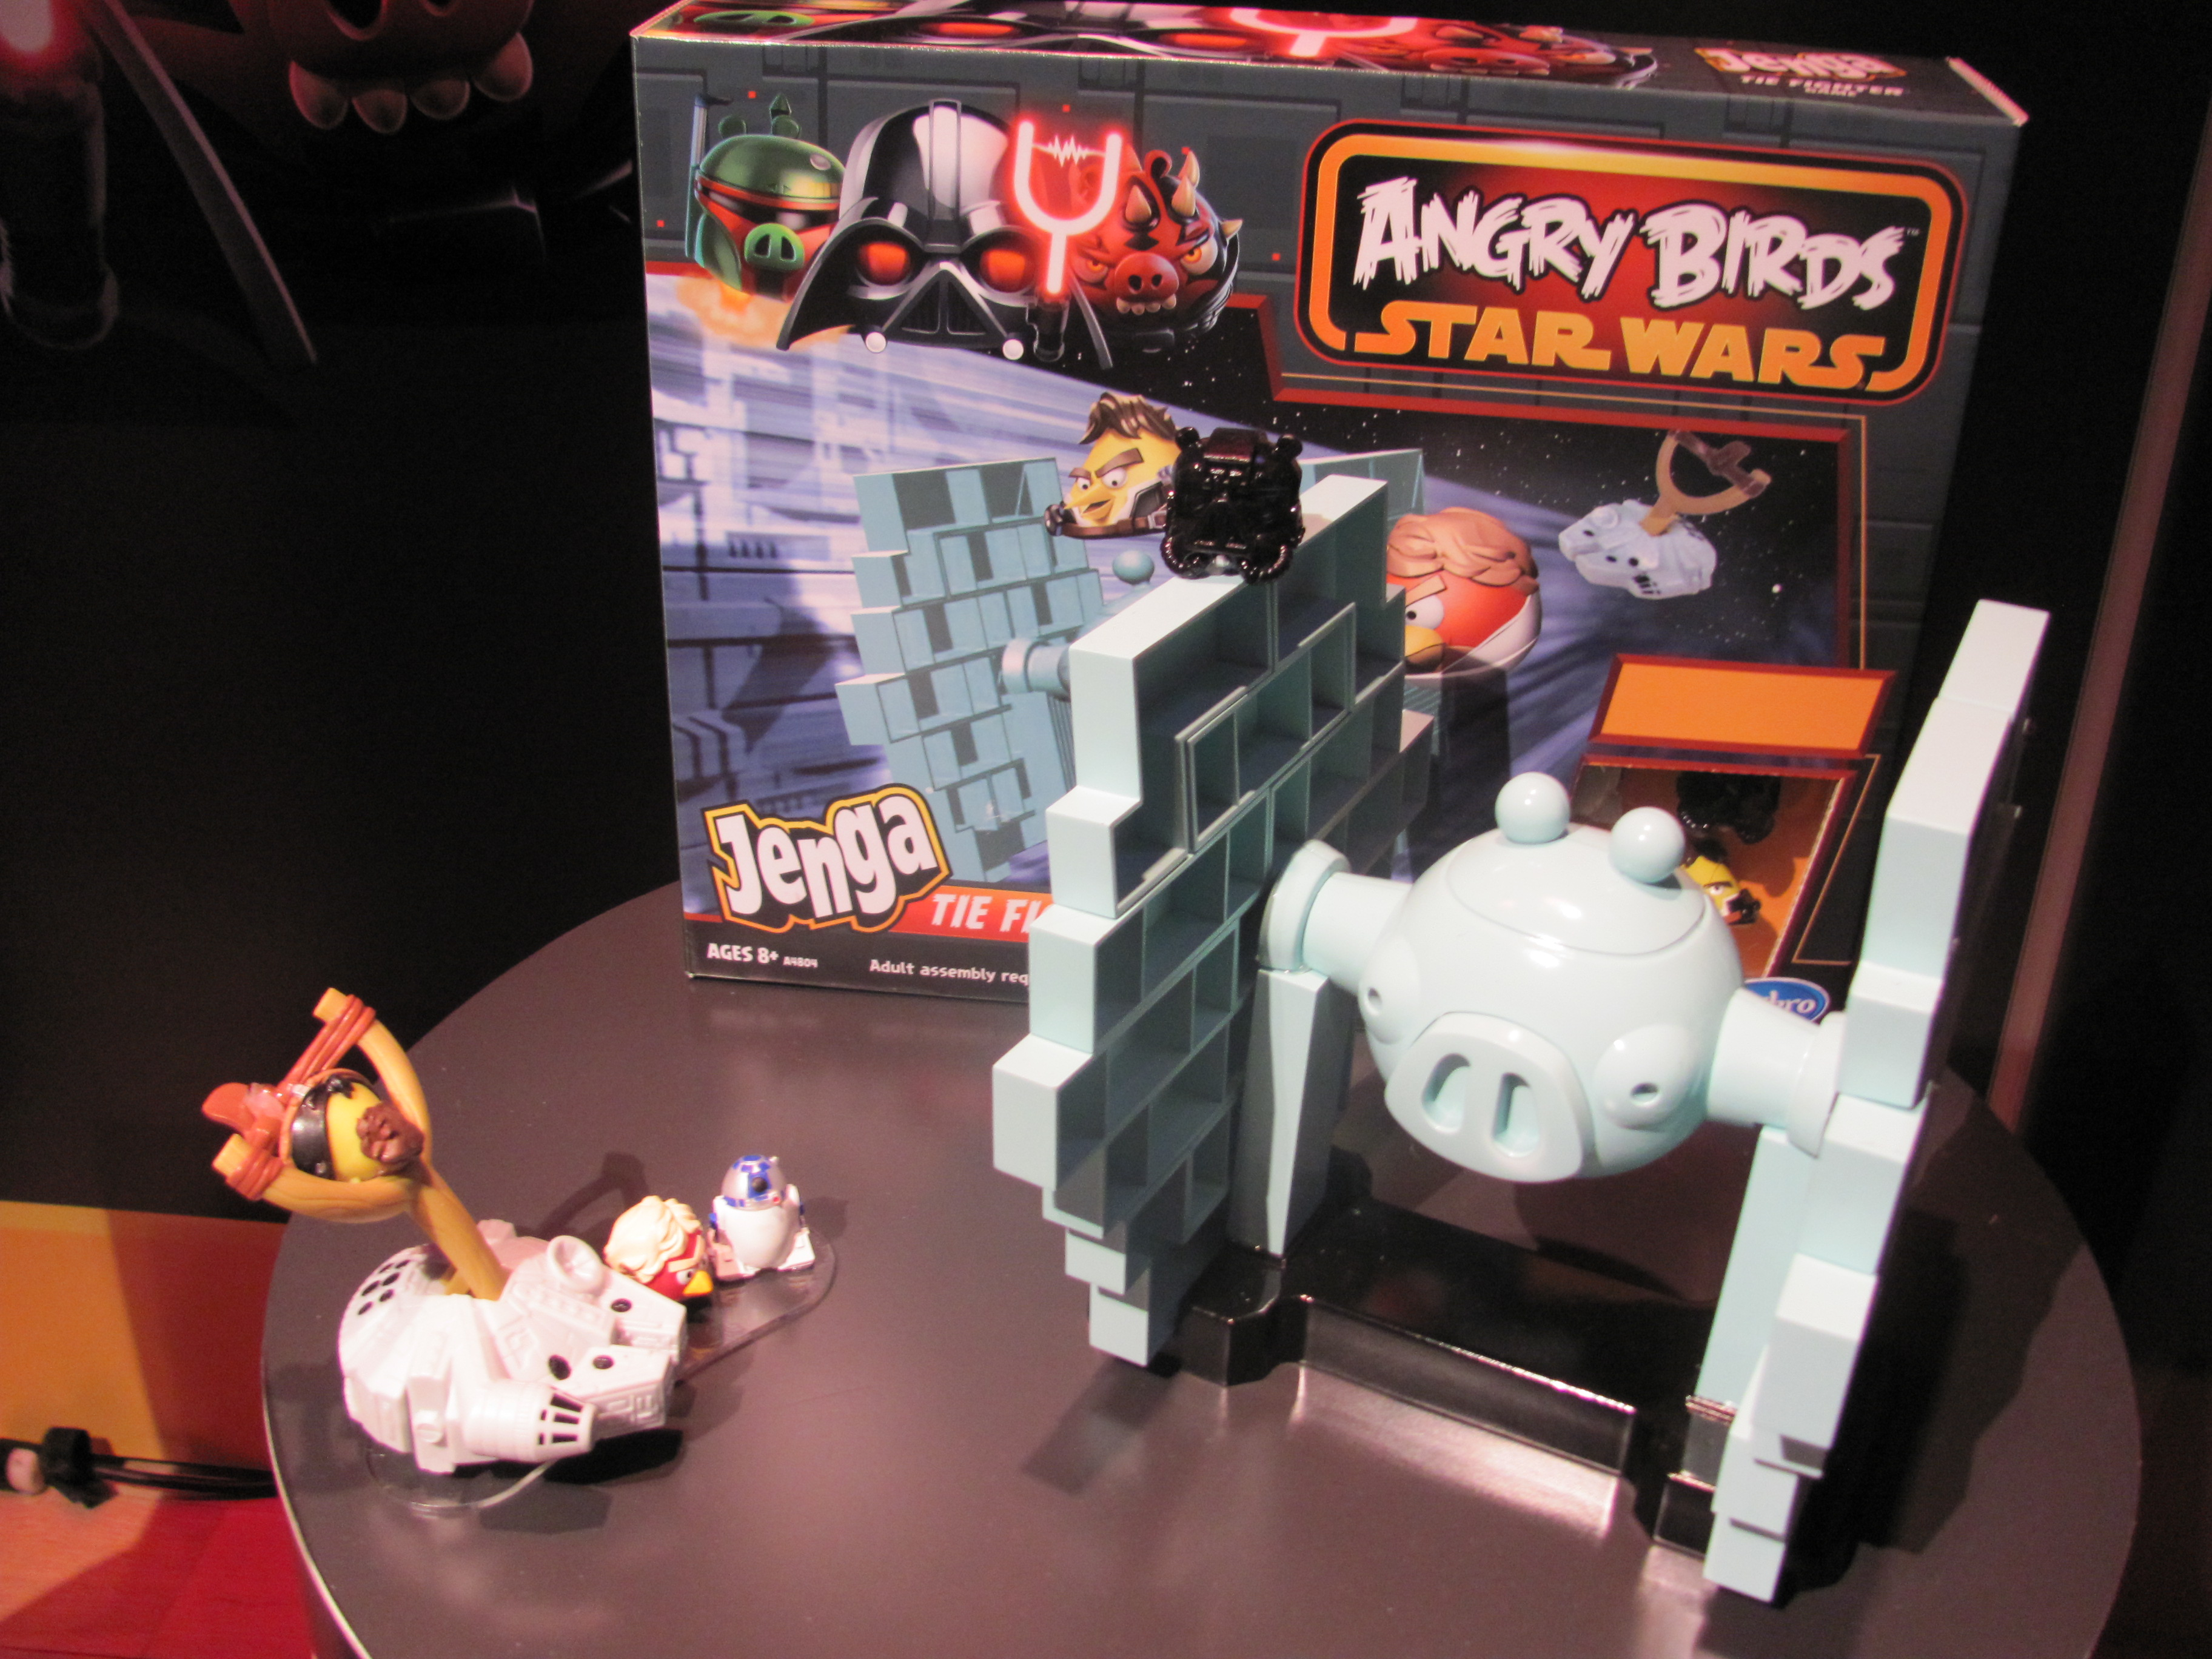 Angry Birds Star Wars Toys : Angry birds star wars archives the toyark news